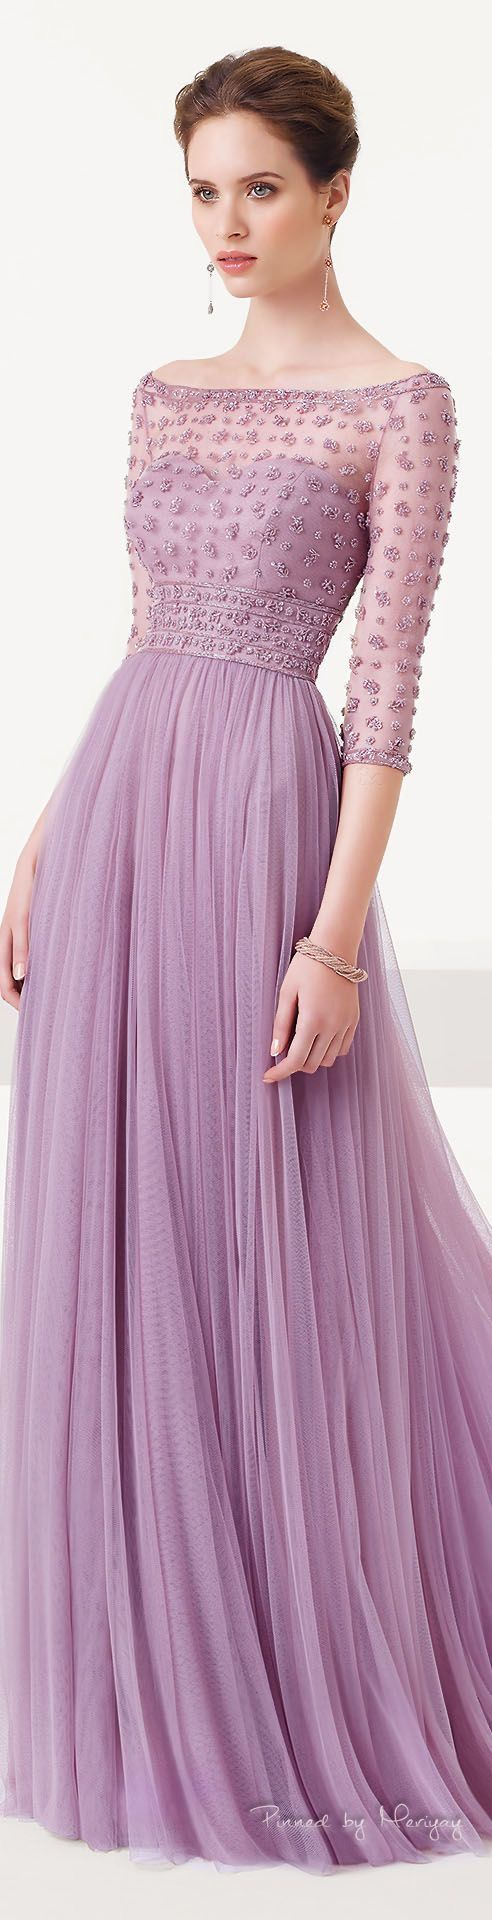 Pin by angela vargas on gowns in pinterest dresses gowns